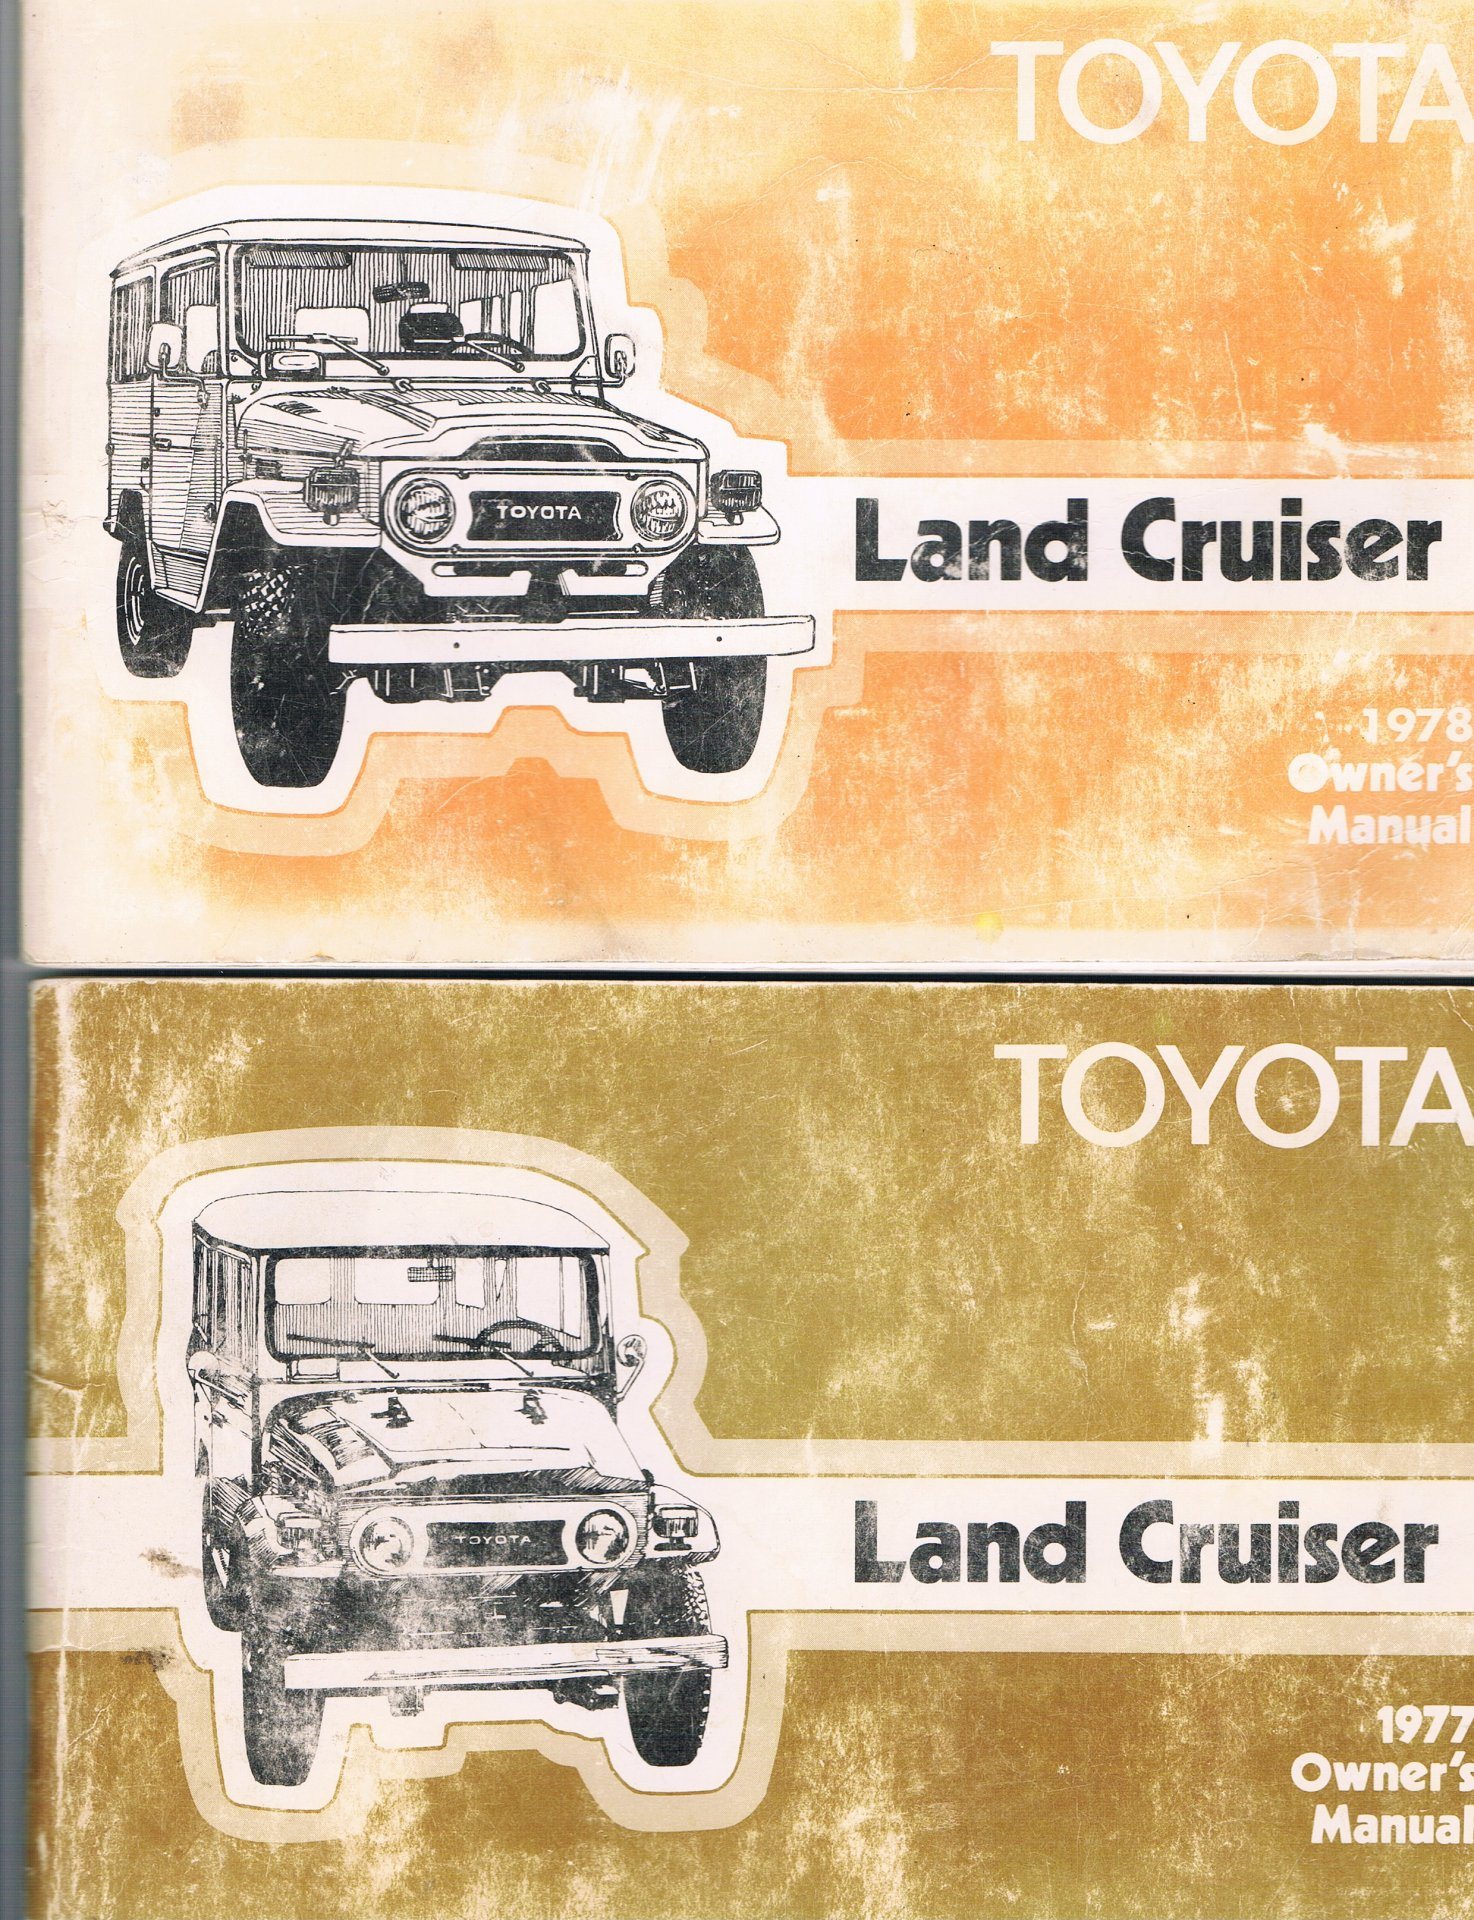 owner s manual reference thread 40 and 55 series ih8mud forum rh forum ih8mud com toyota fj40 owners manual 1970 toyota fj40 owners manual